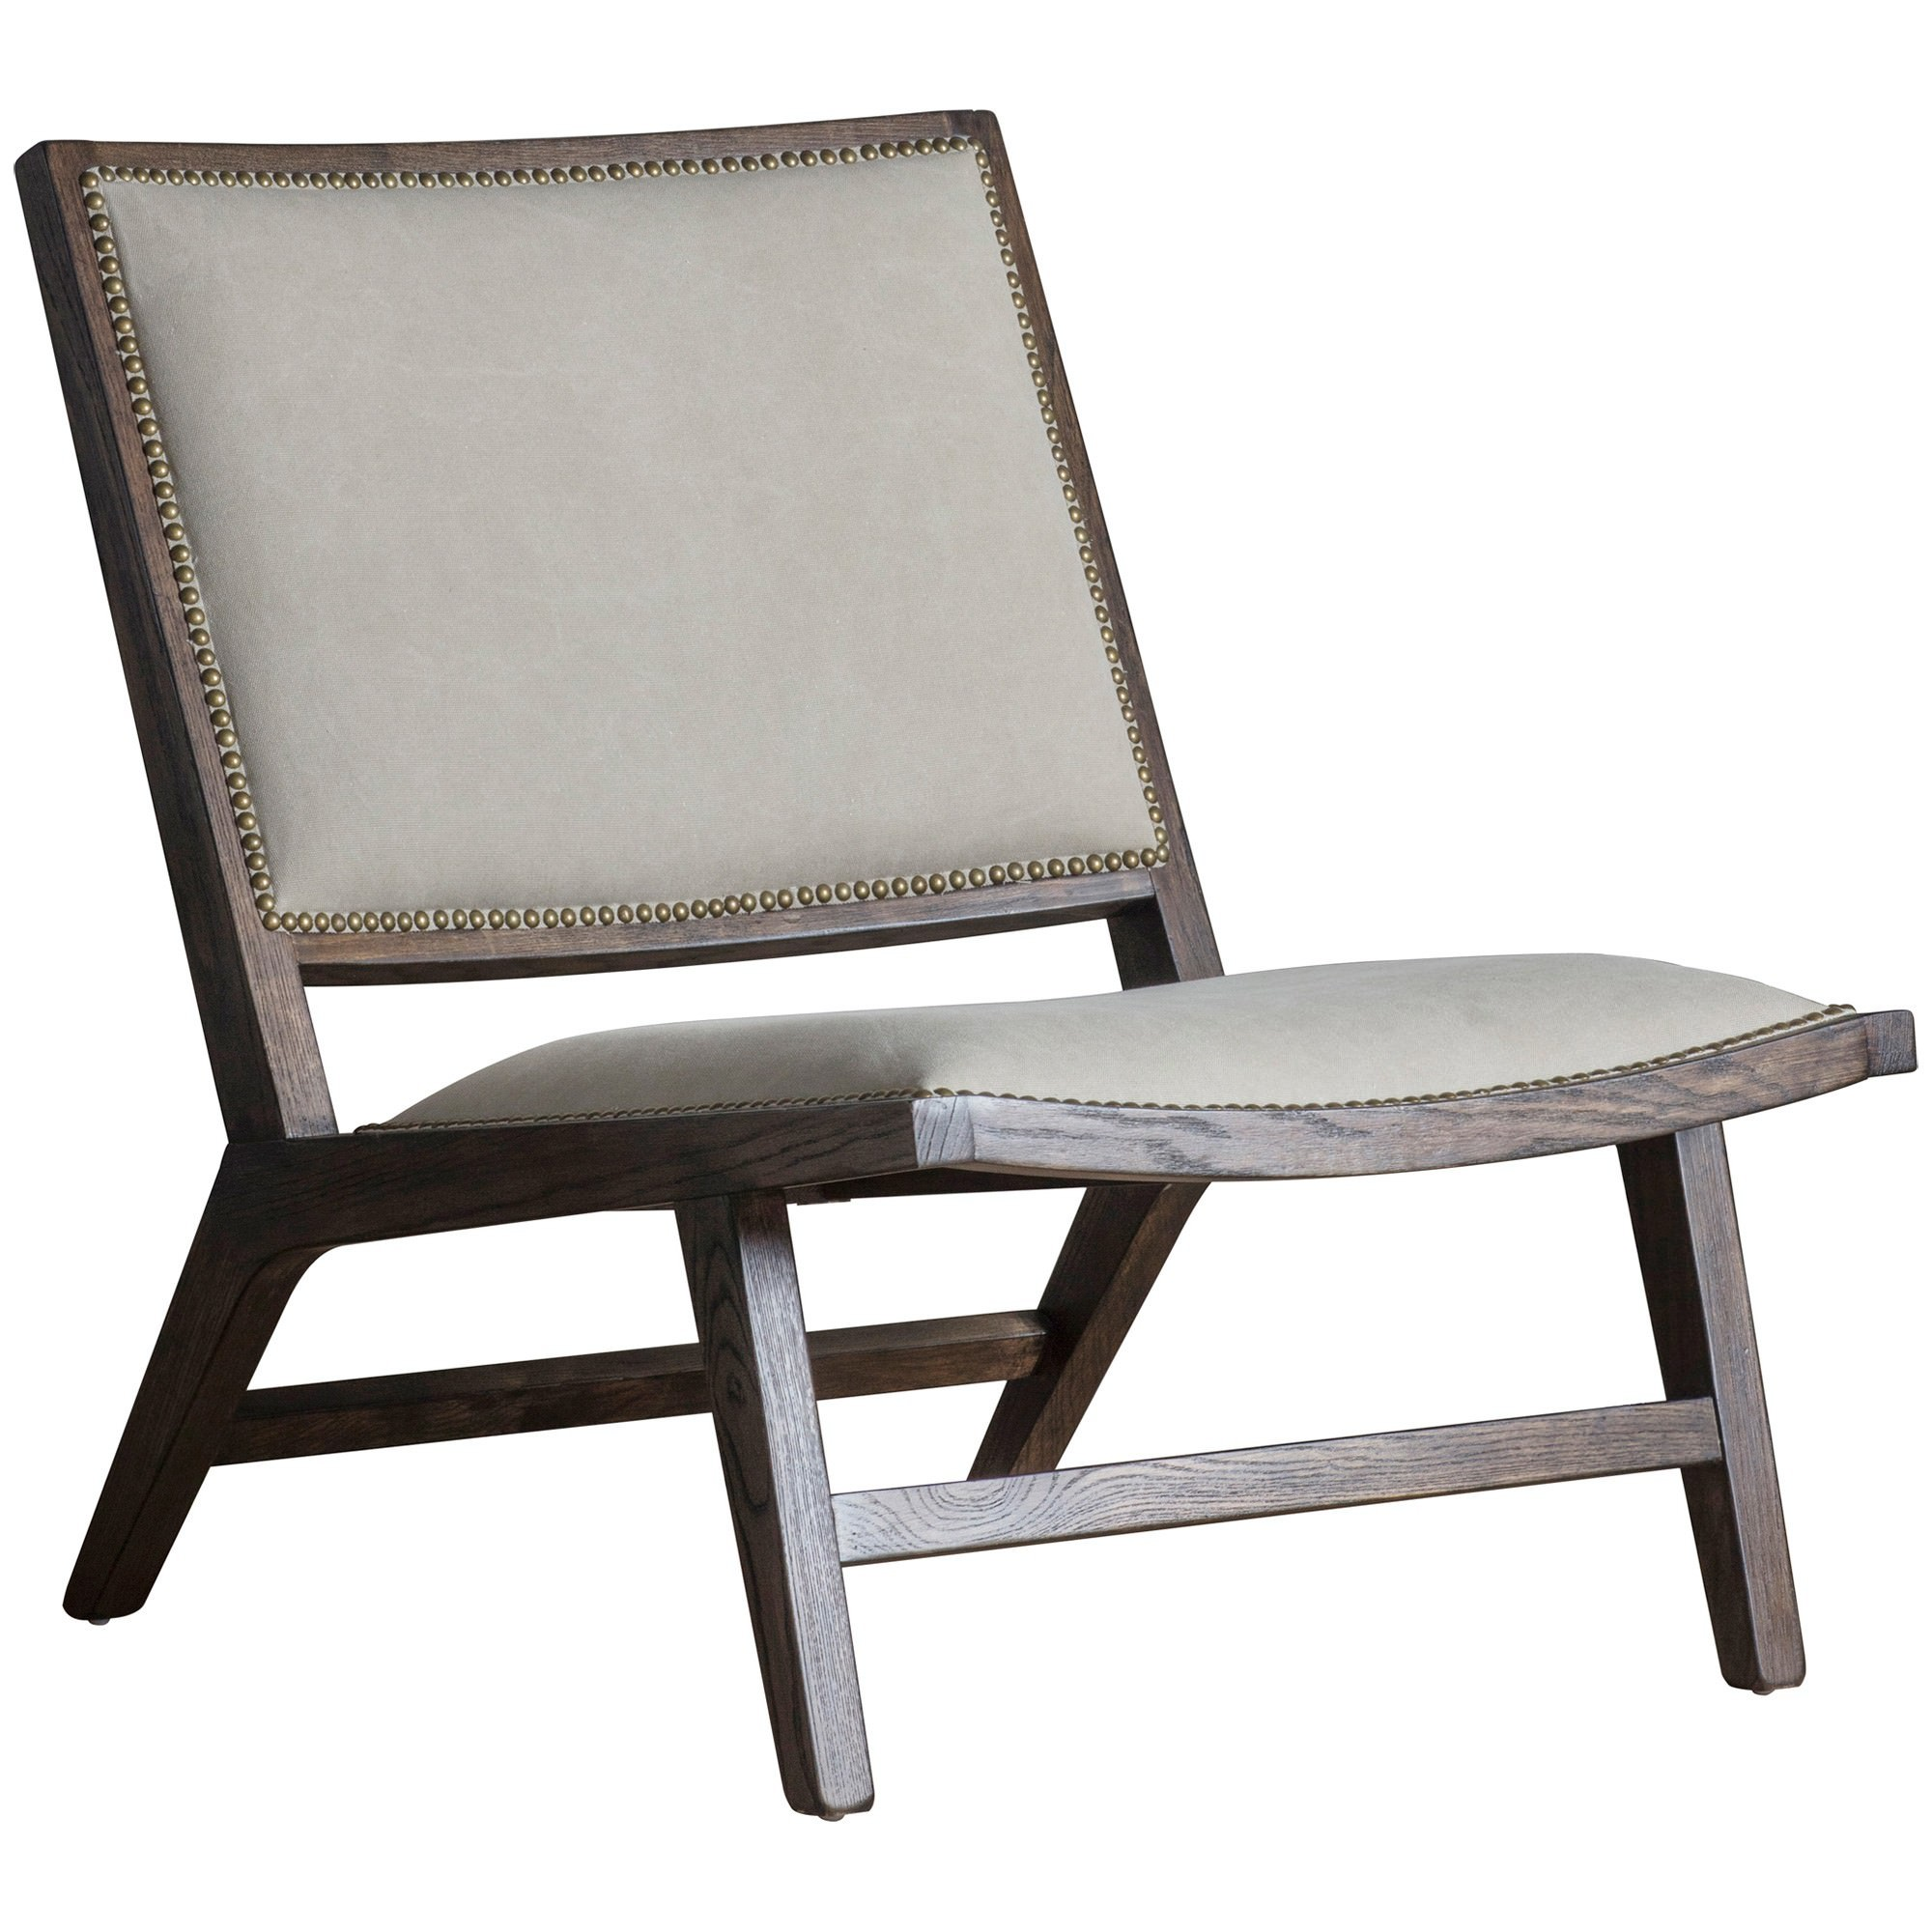 Caiden Fabric & Ash Timber Lounge Chair, Beige